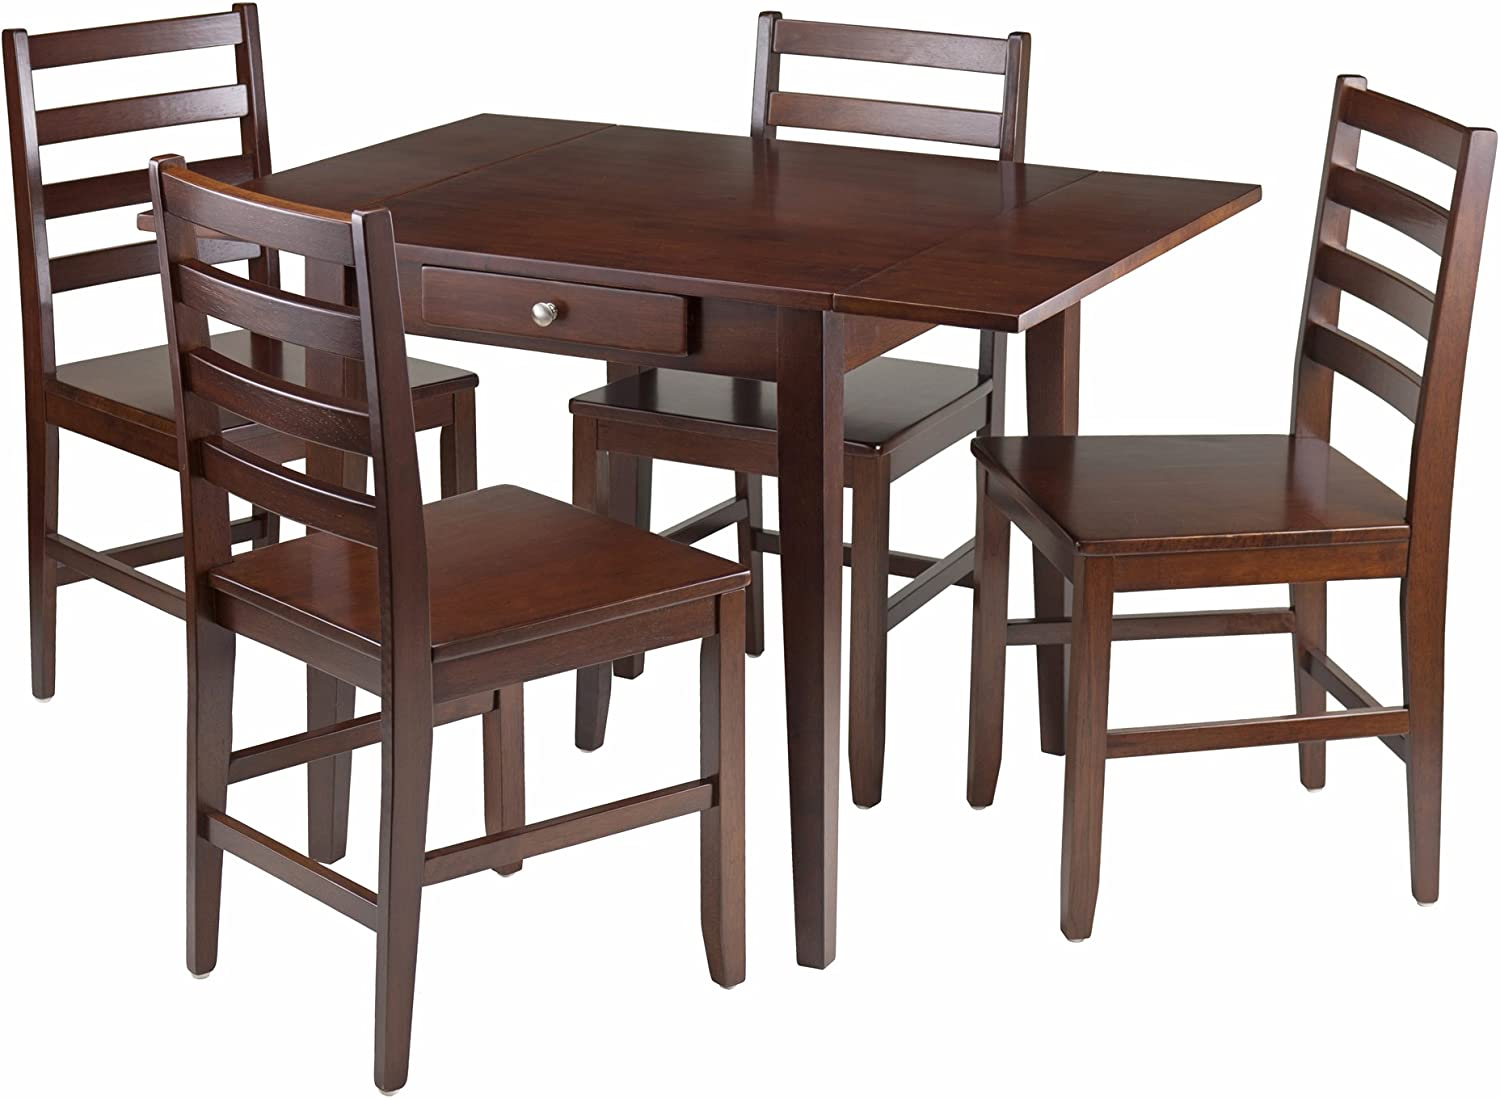 Winsome Wood Hamilton 5 Piece Drop Leaf Dining Table With 4 Ladder Back Chair Table Chair Sets